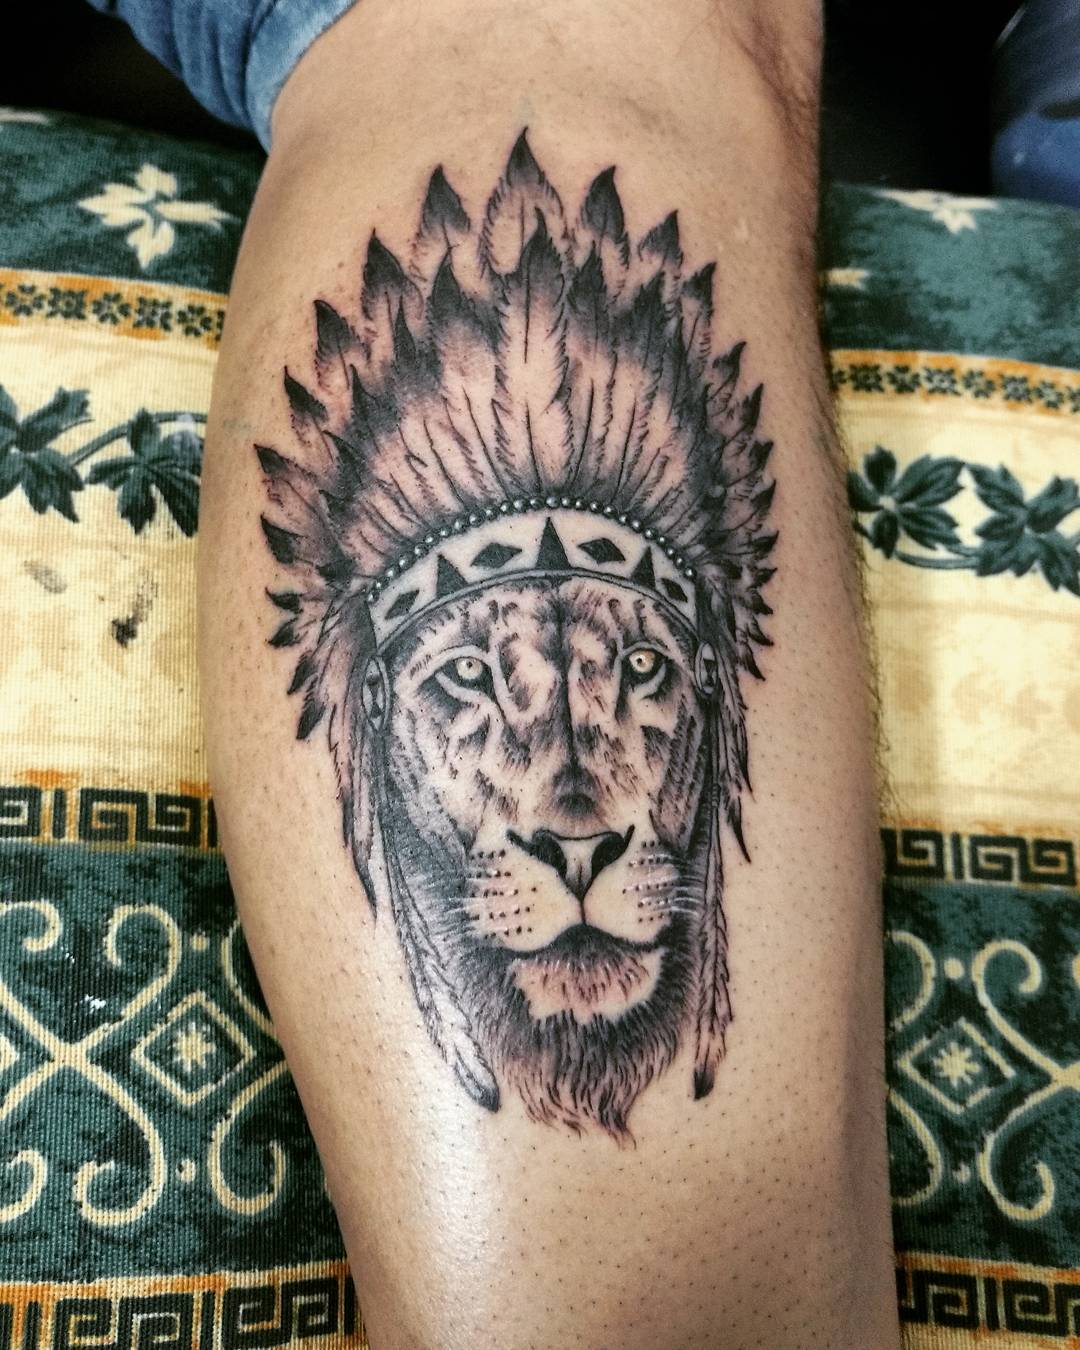 50 Best Mexican Tattoo Designs & Meanings